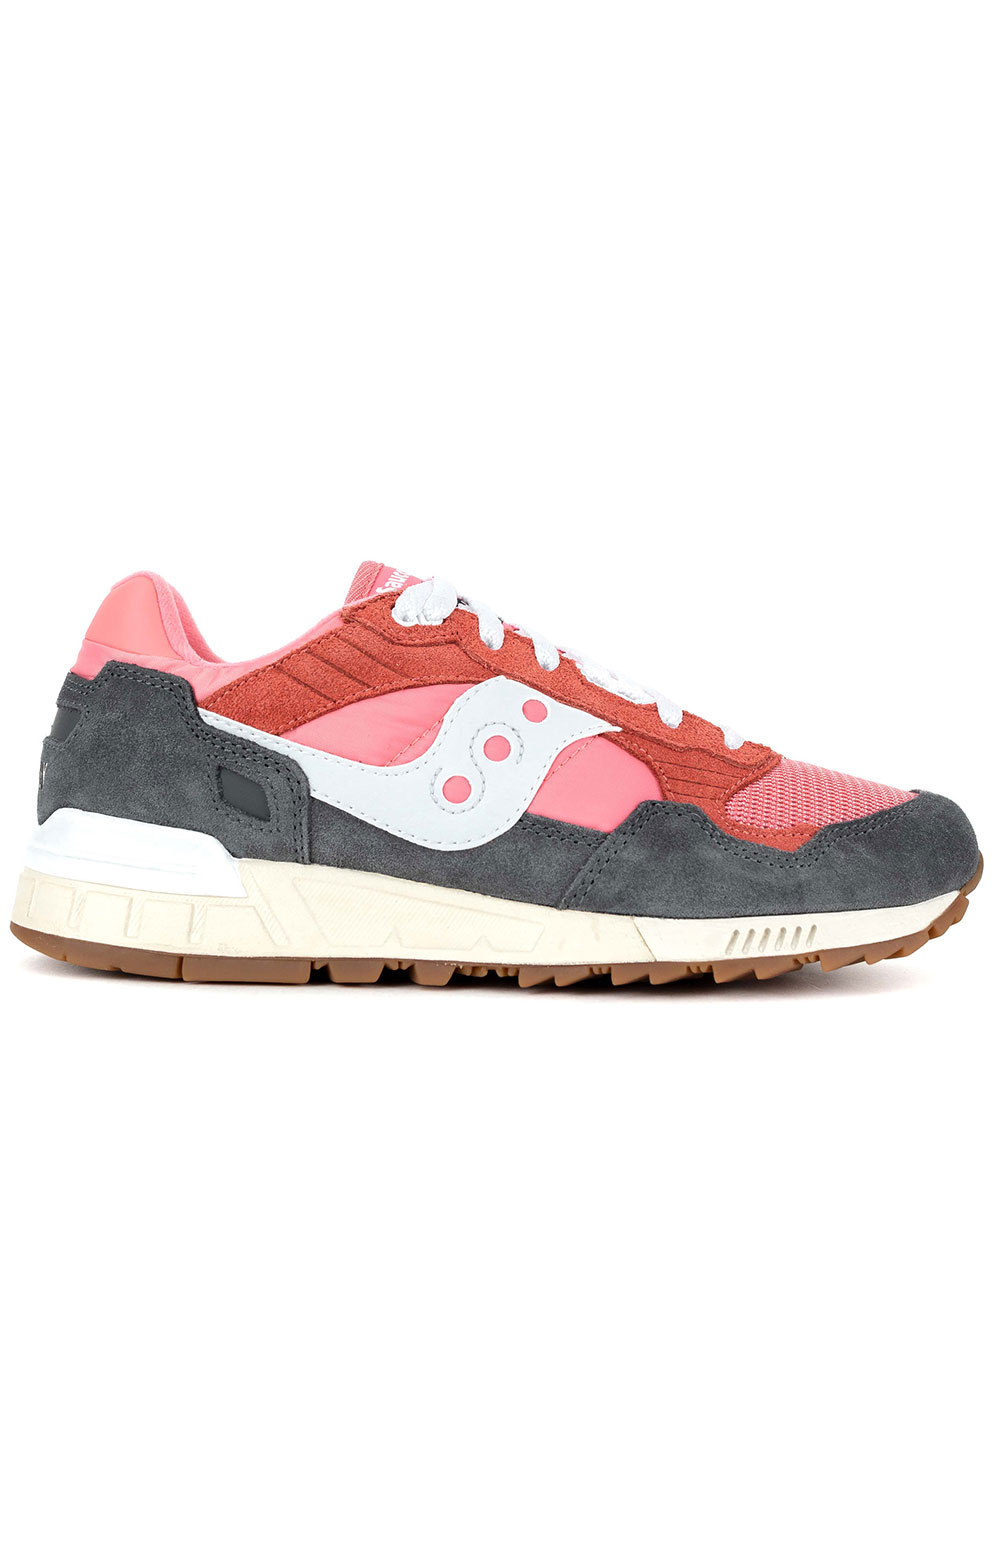 Shadow 5000 Vintage Shoe - Pink/White